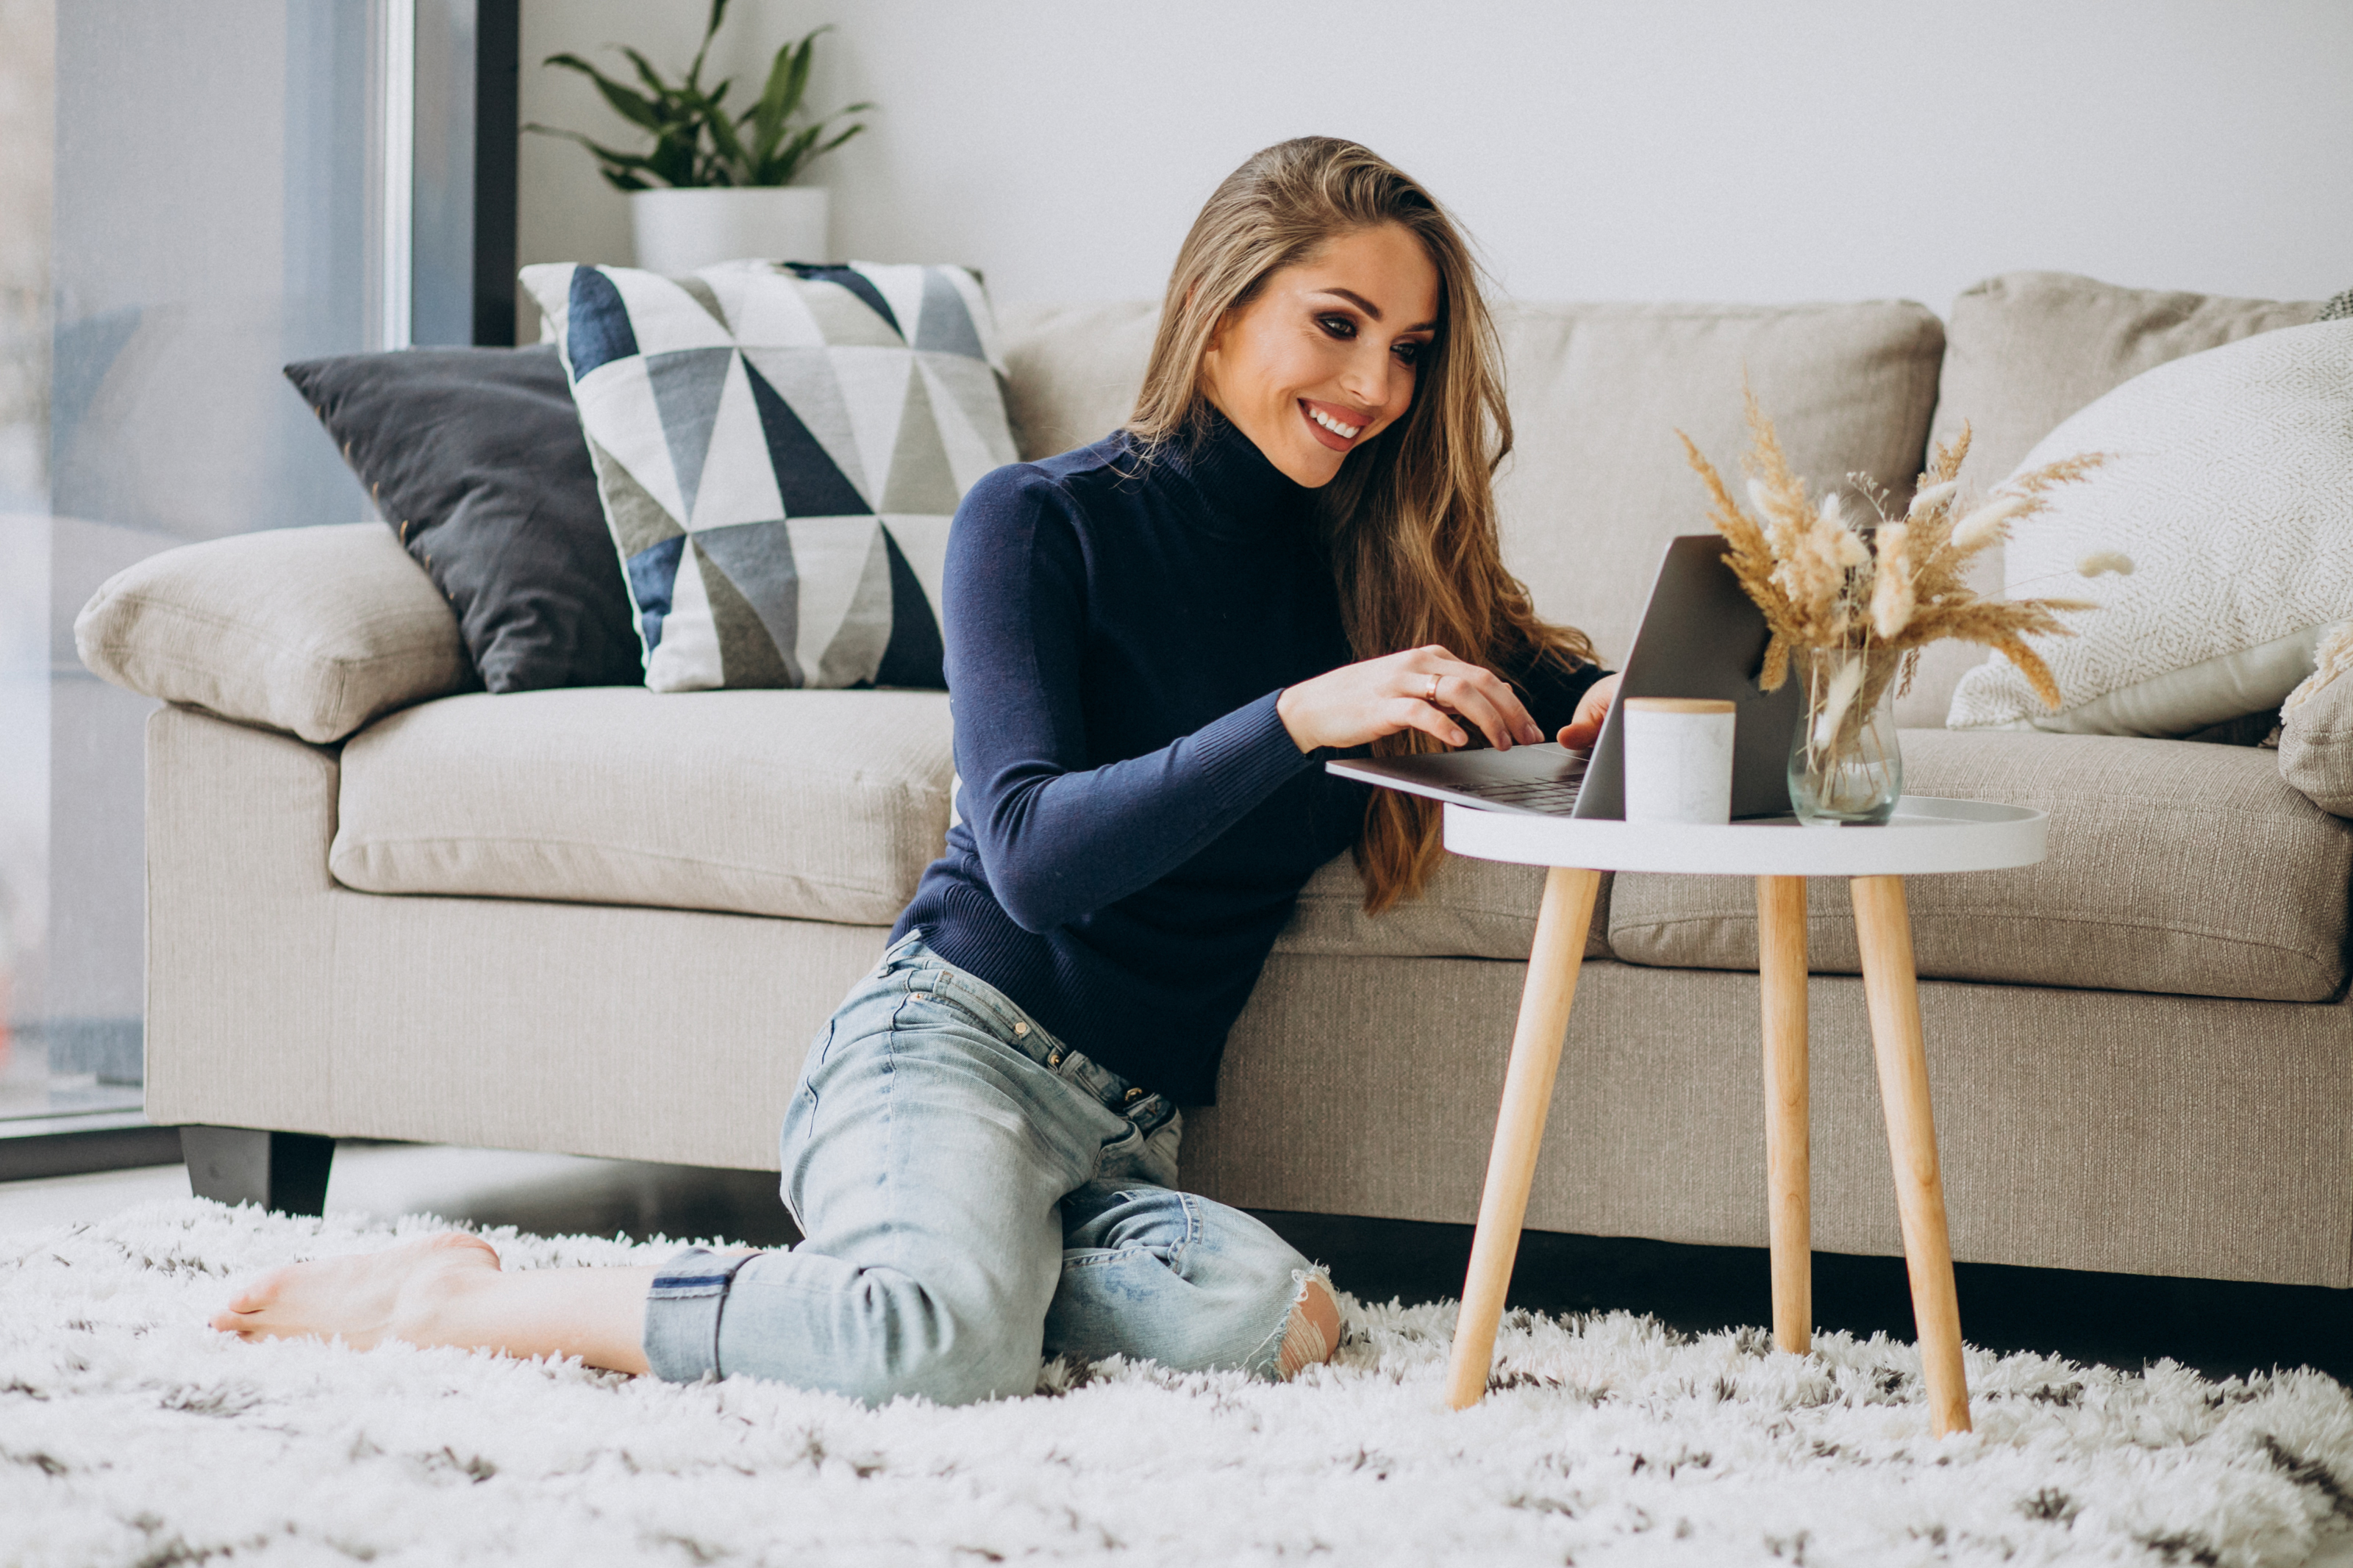 Business woman working on laptop at home